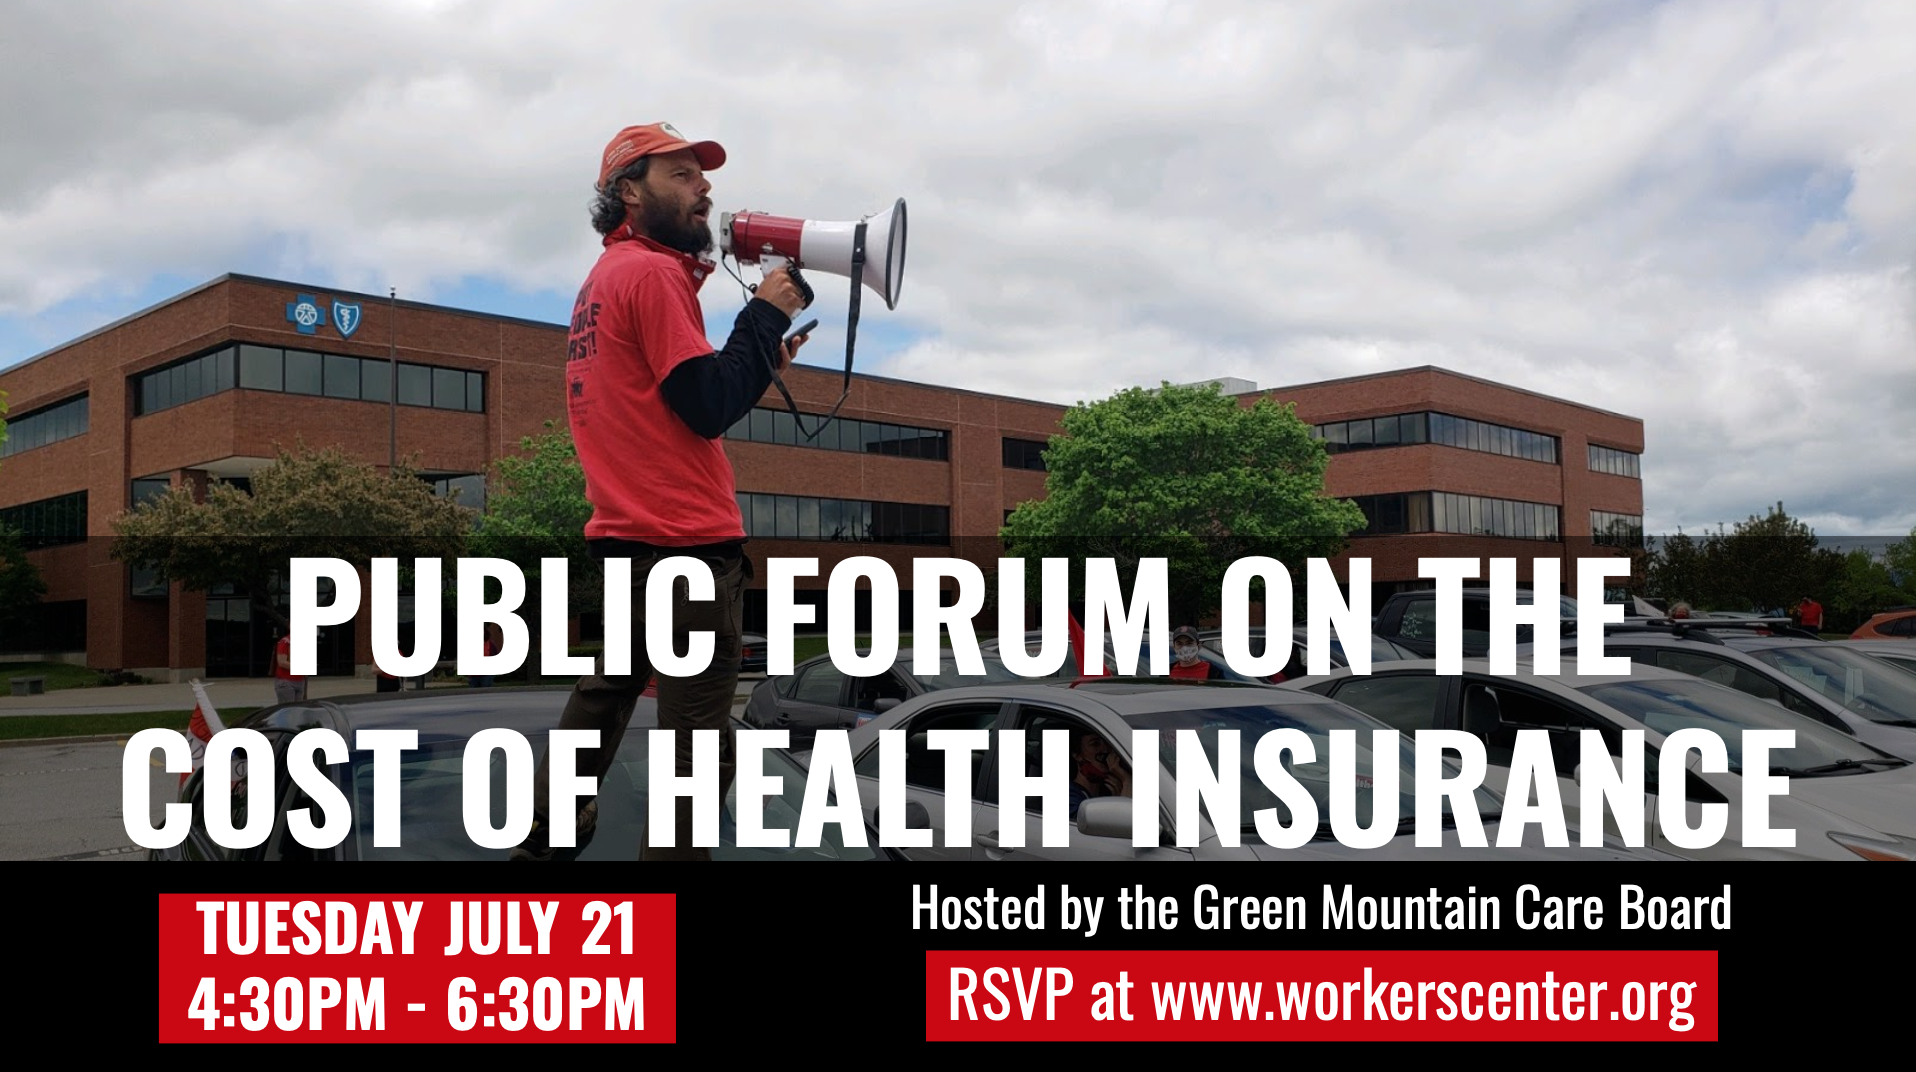 Public Forum on the Cost of Health Insurance